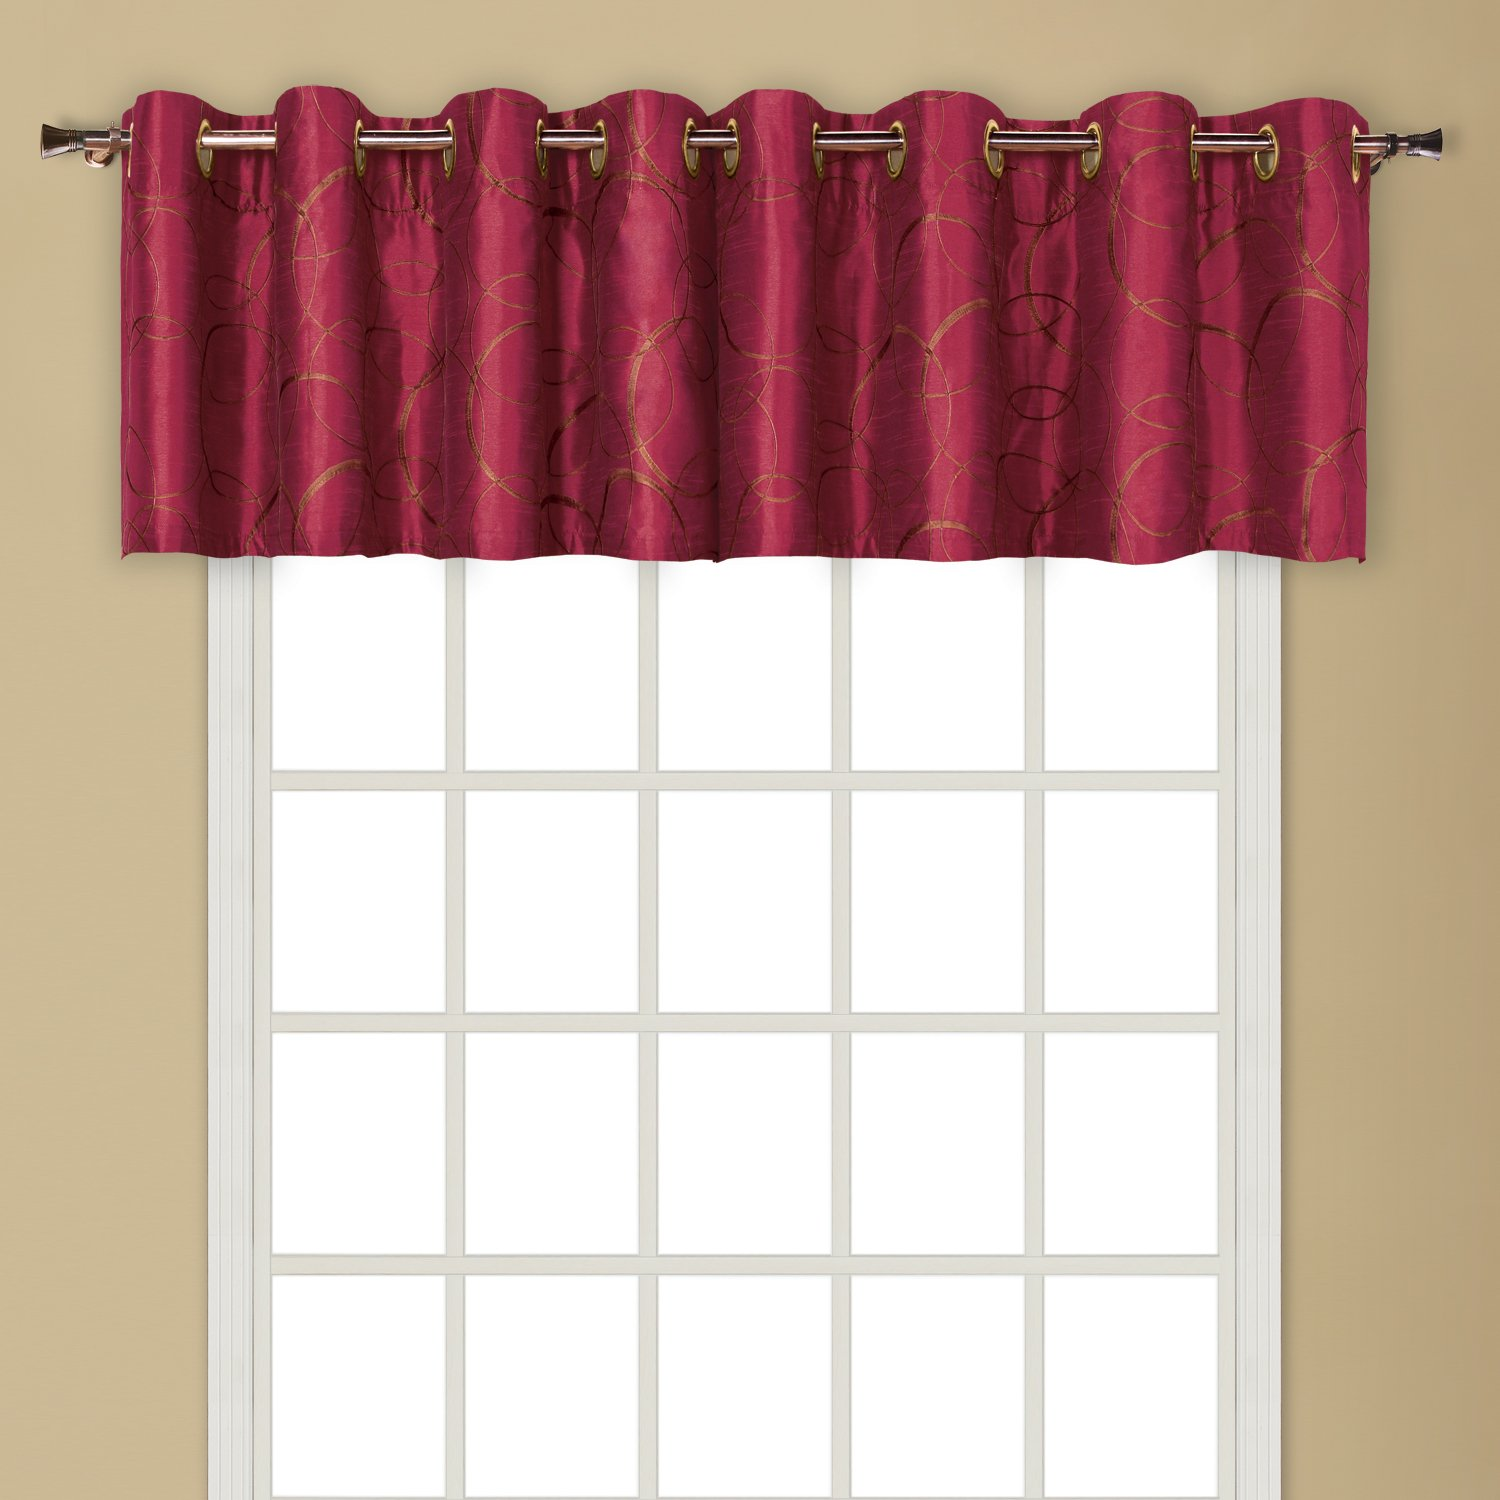 to at lowes curtains curtain rod project single source shop pd com in